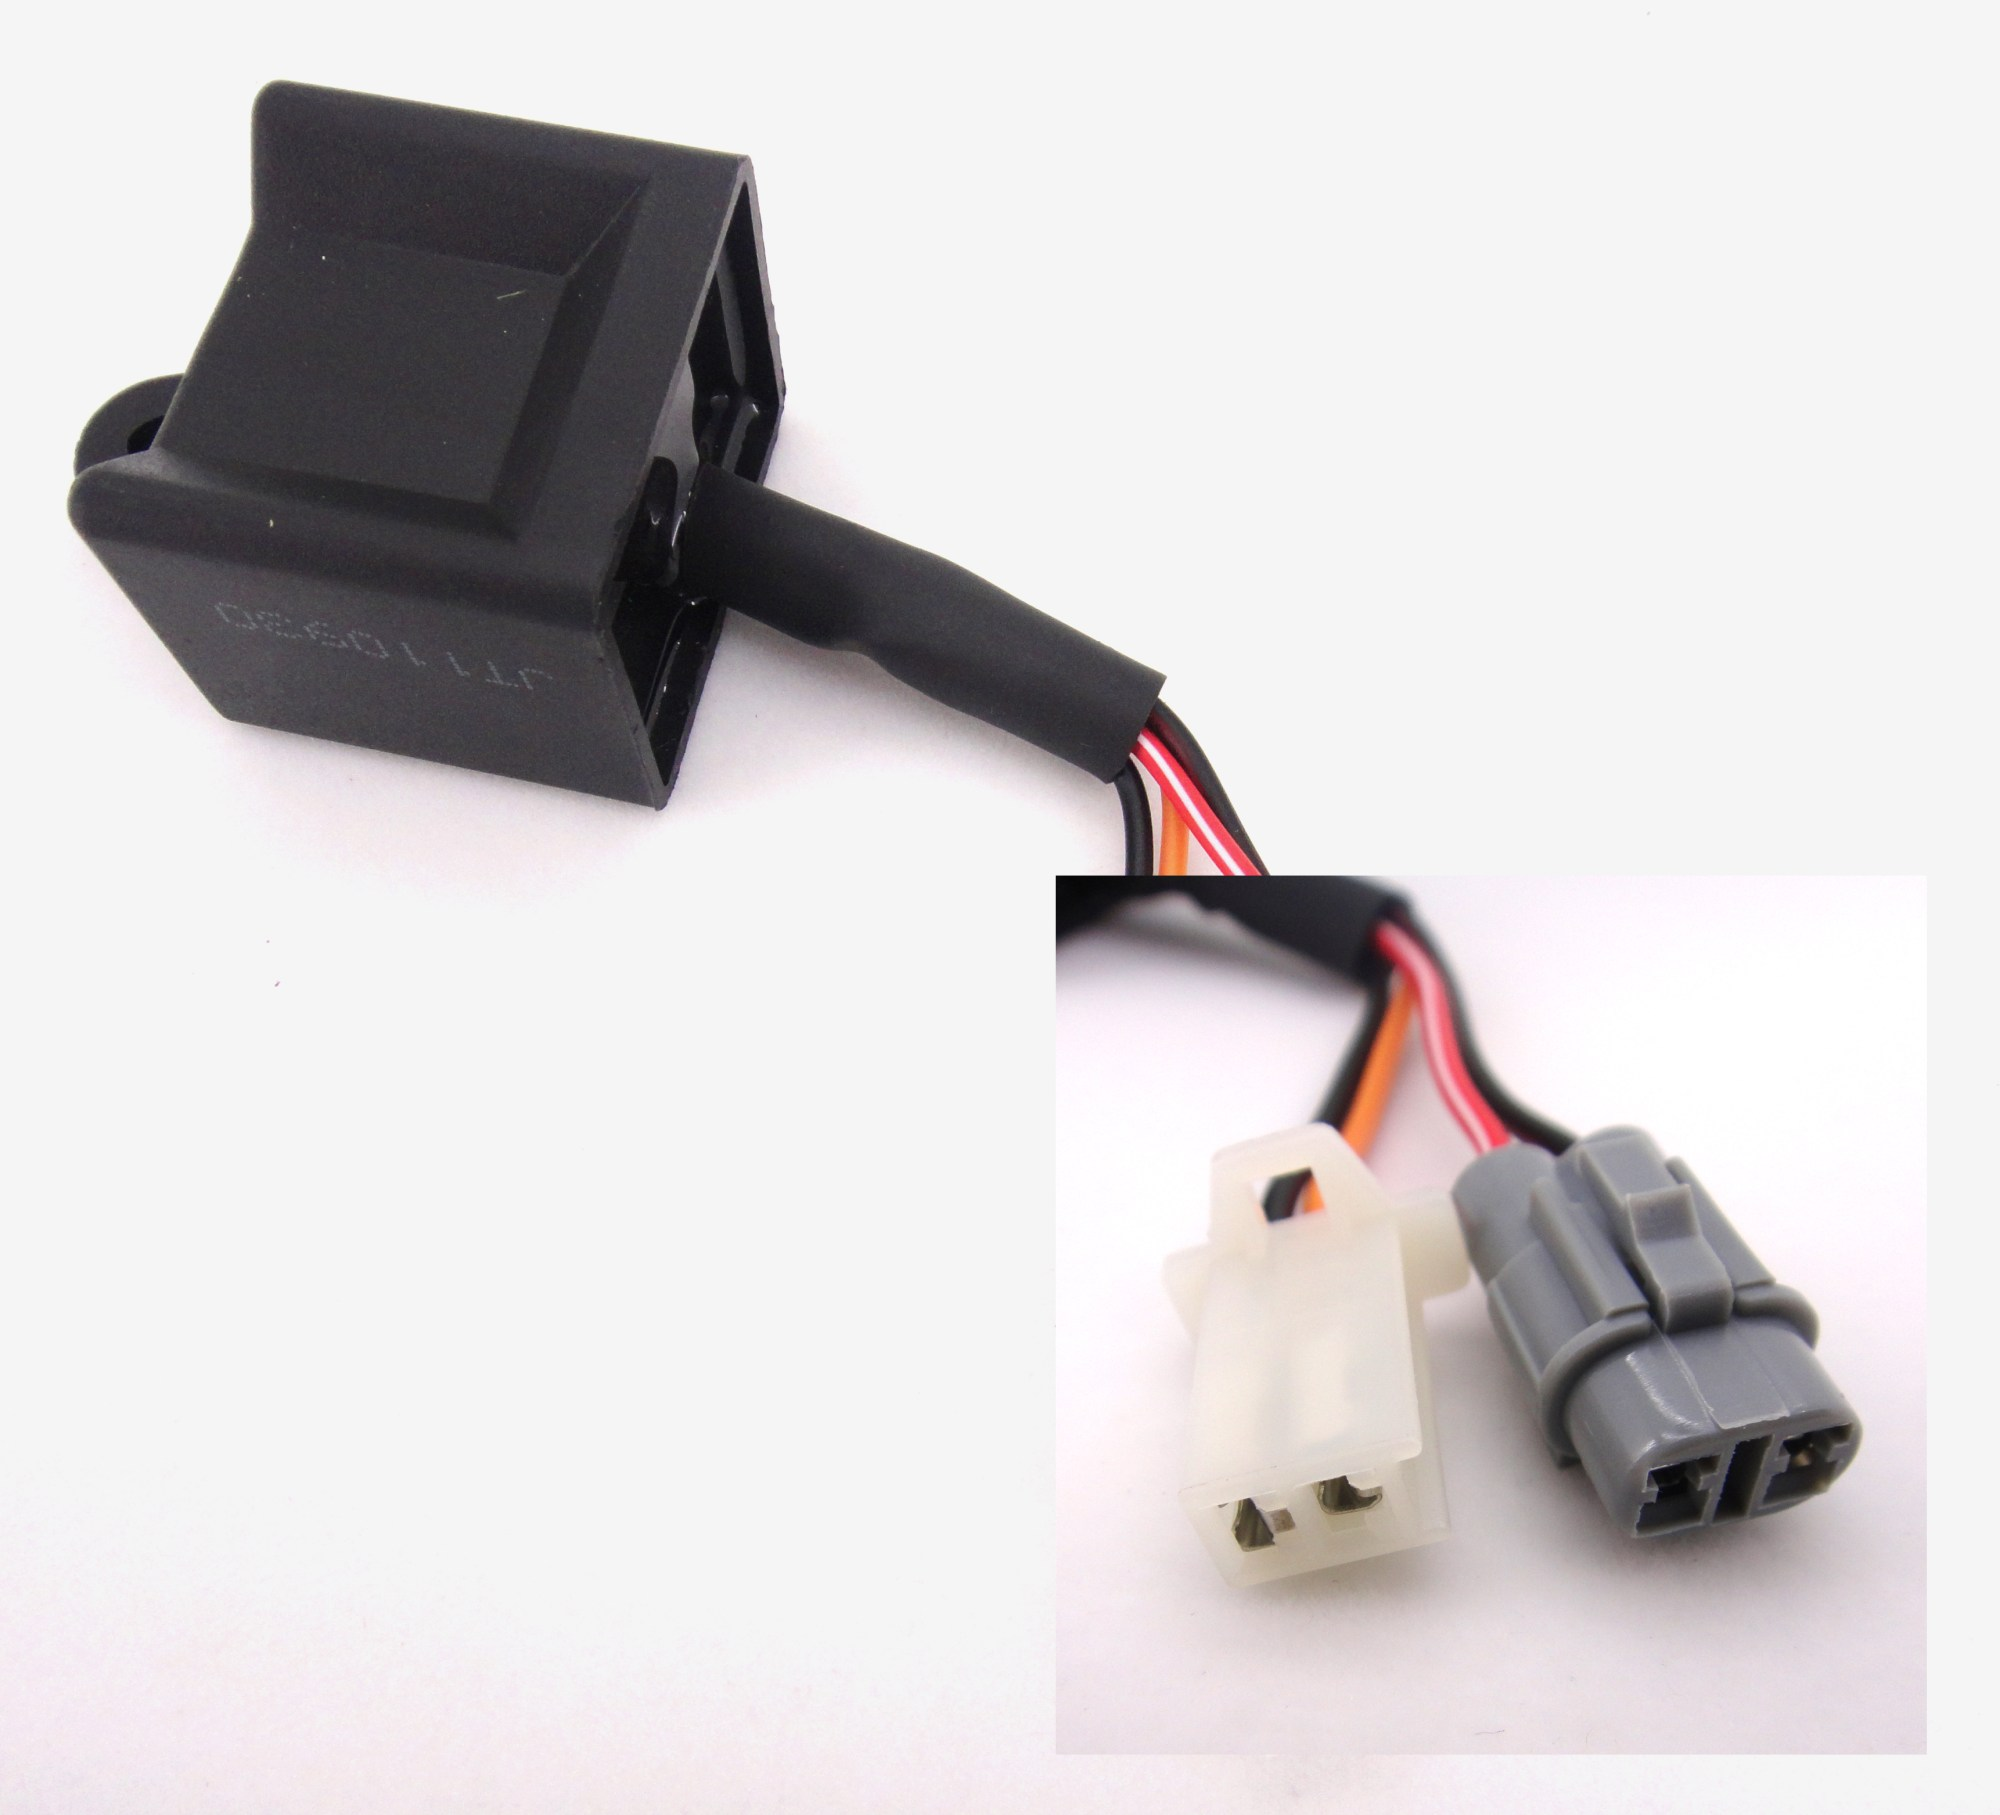 hight resolution of for yamaha pw50 pw 50 cdi control unit ignition coil